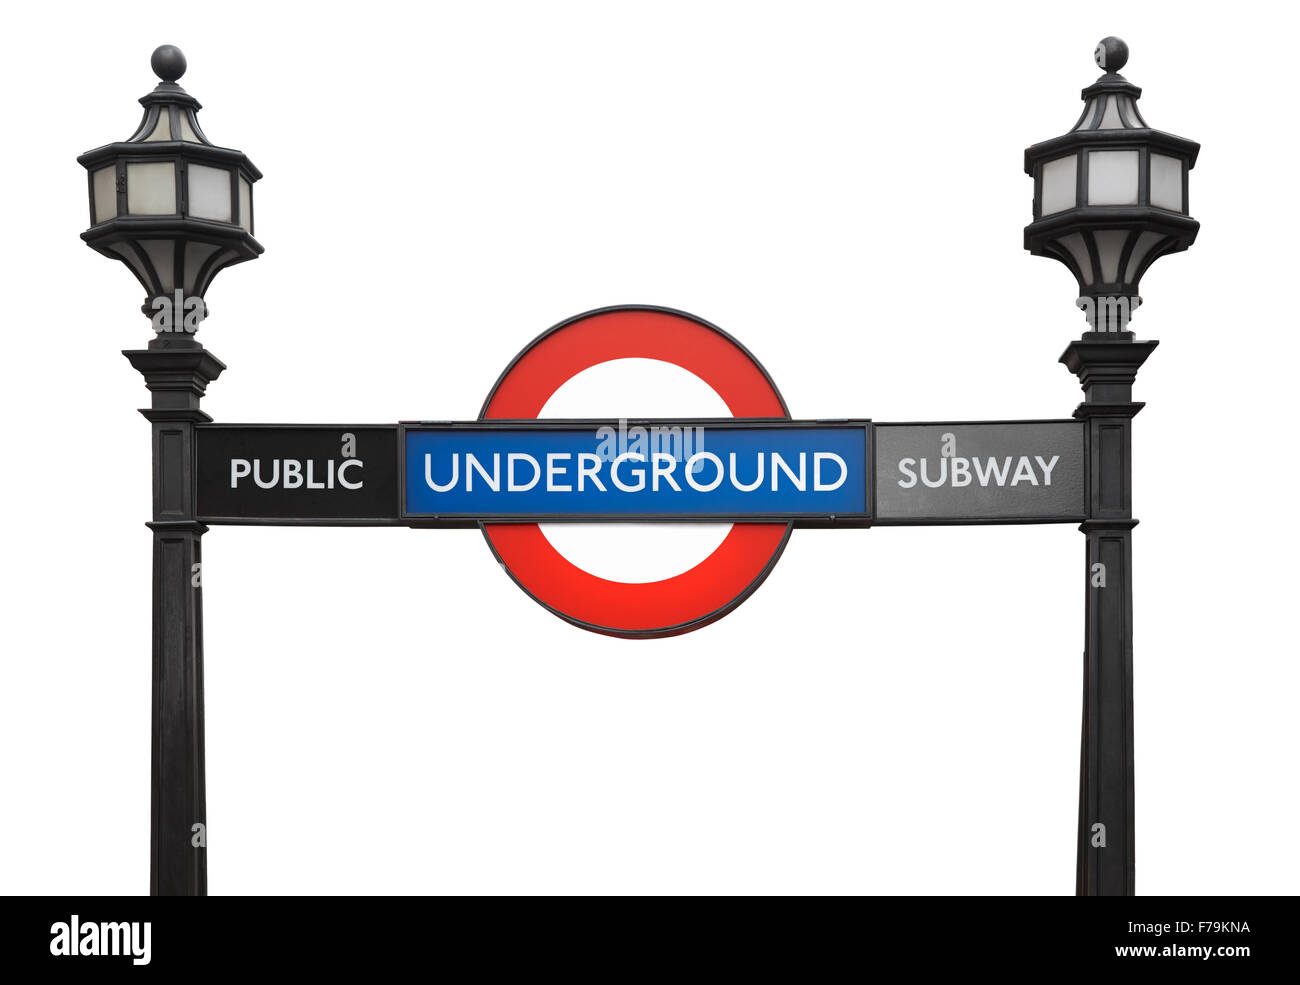 Famous London public underground subway sign with street lamps isolated on white, clipping path included - Stock Image